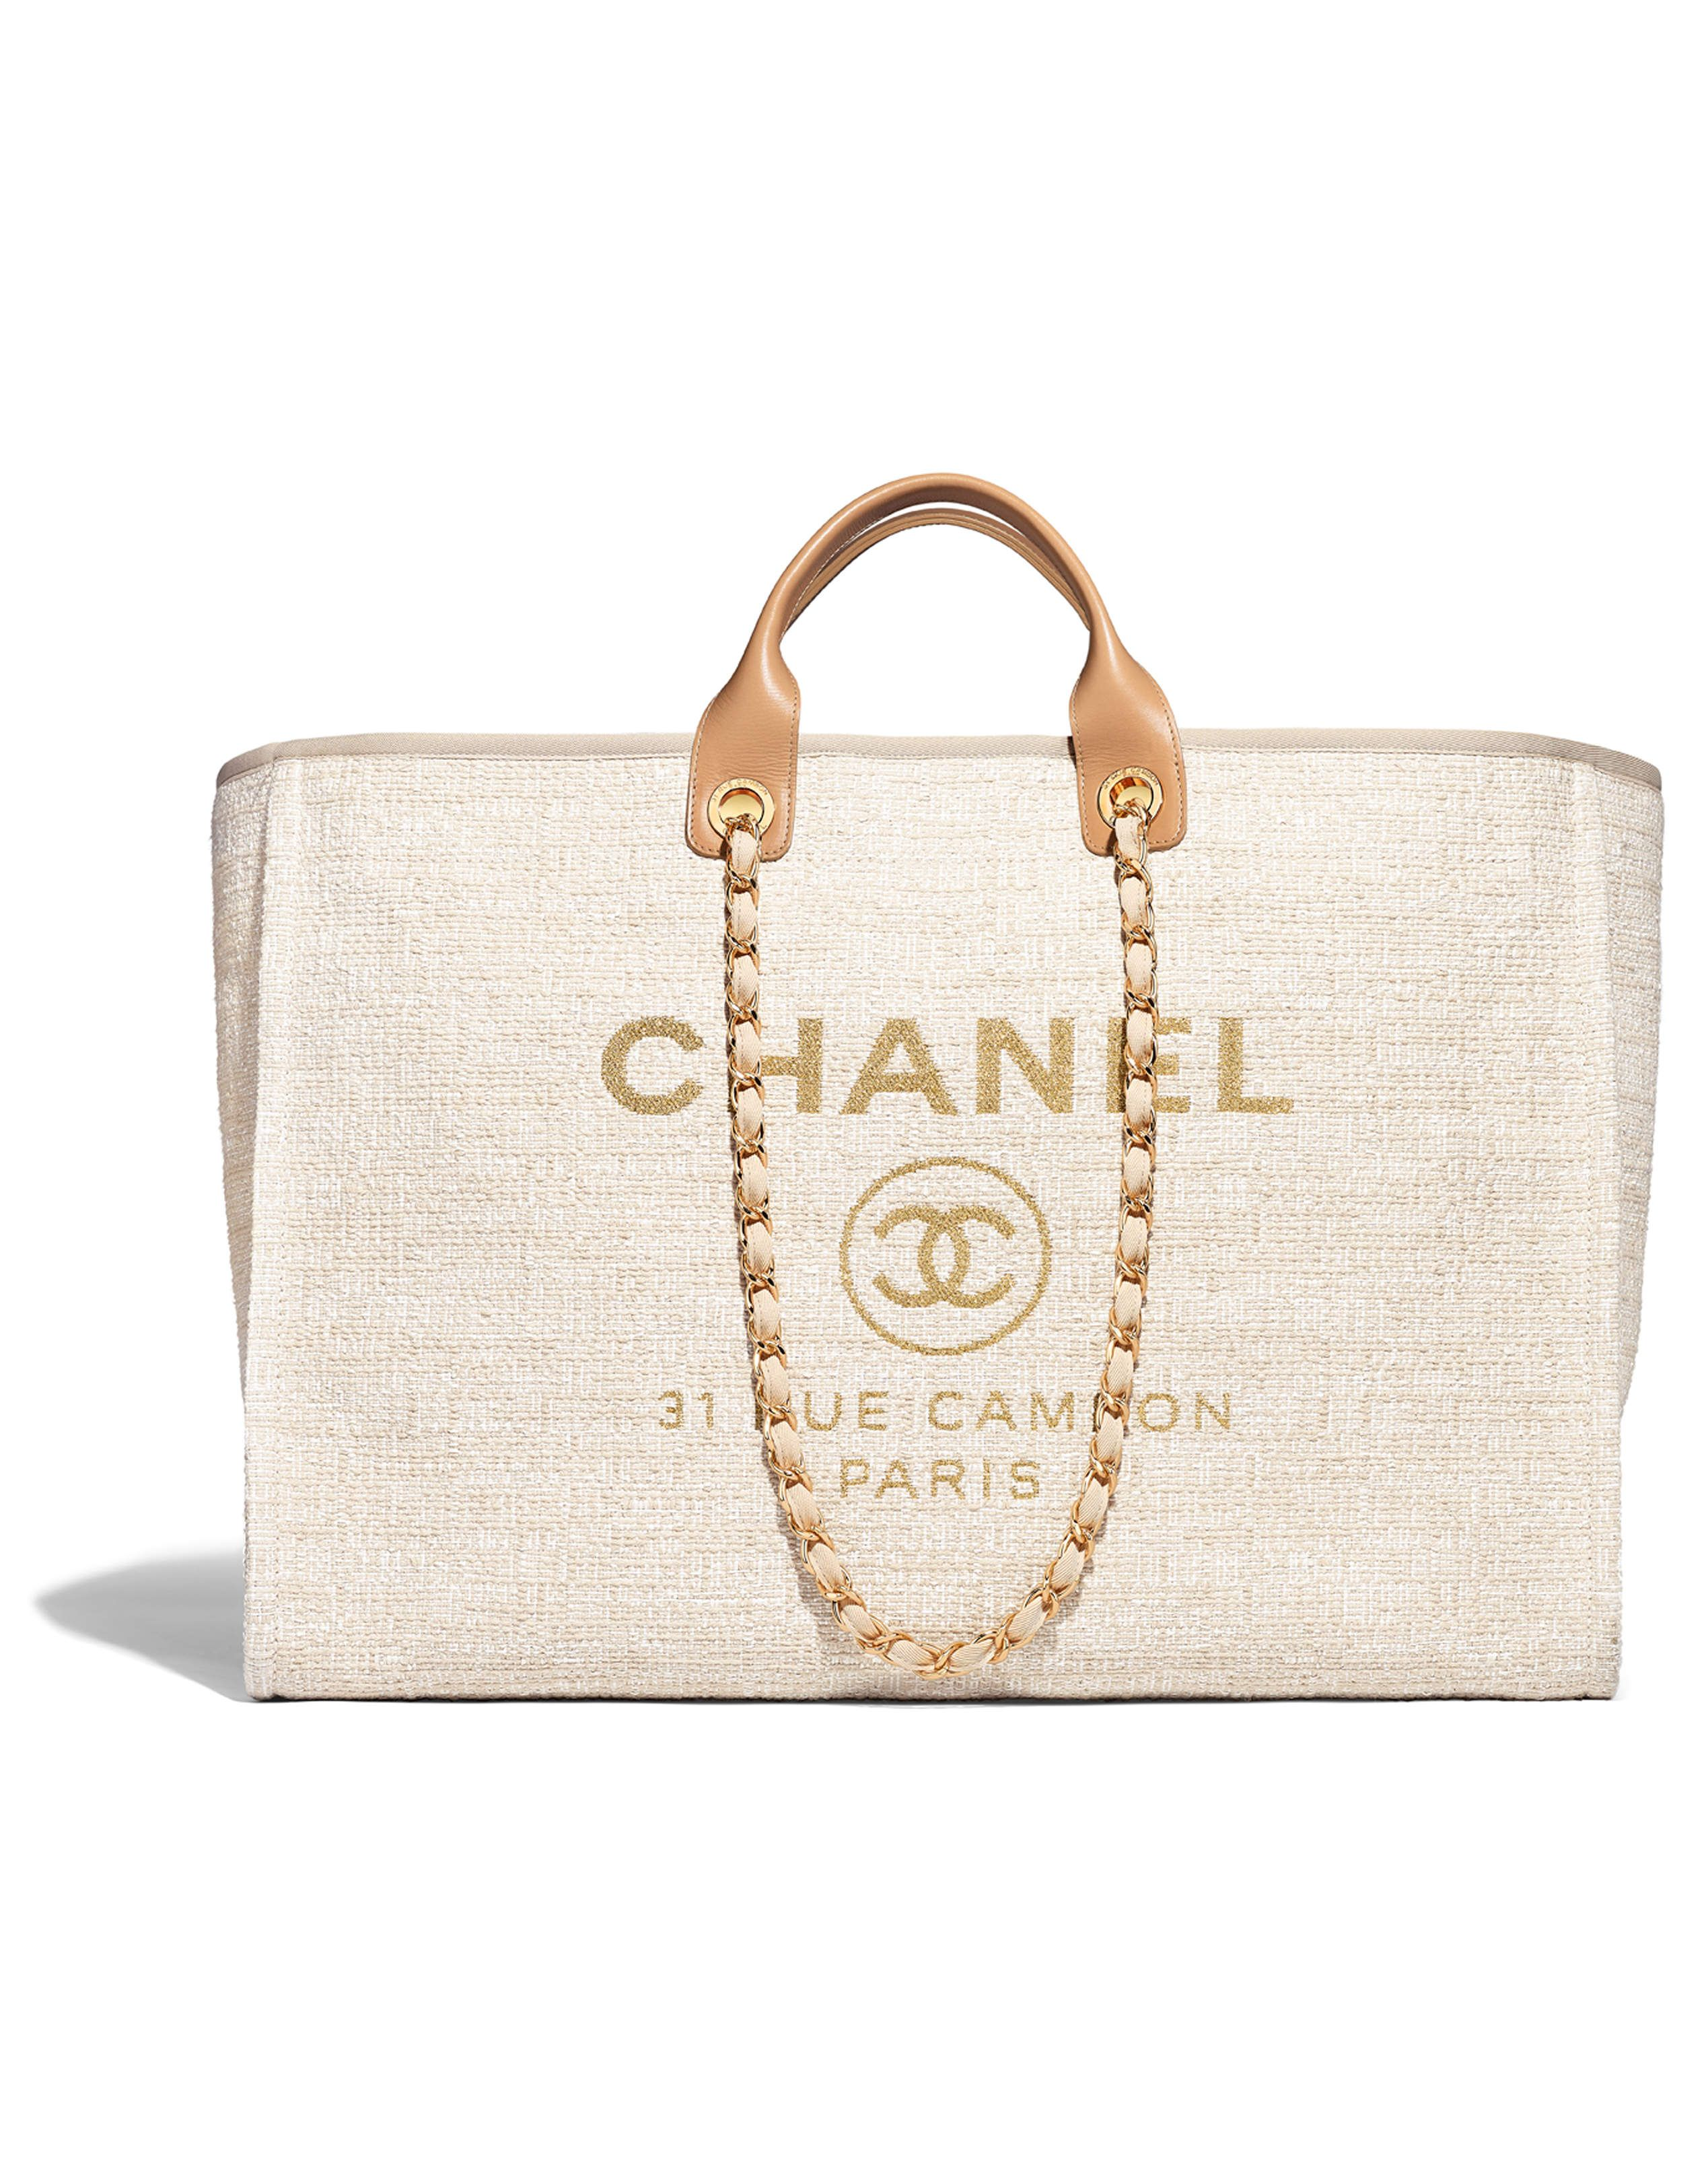 94ed12b39de492 Chanel - Cruise 2017/2018 | Large canvas shopping bag | Style in ...